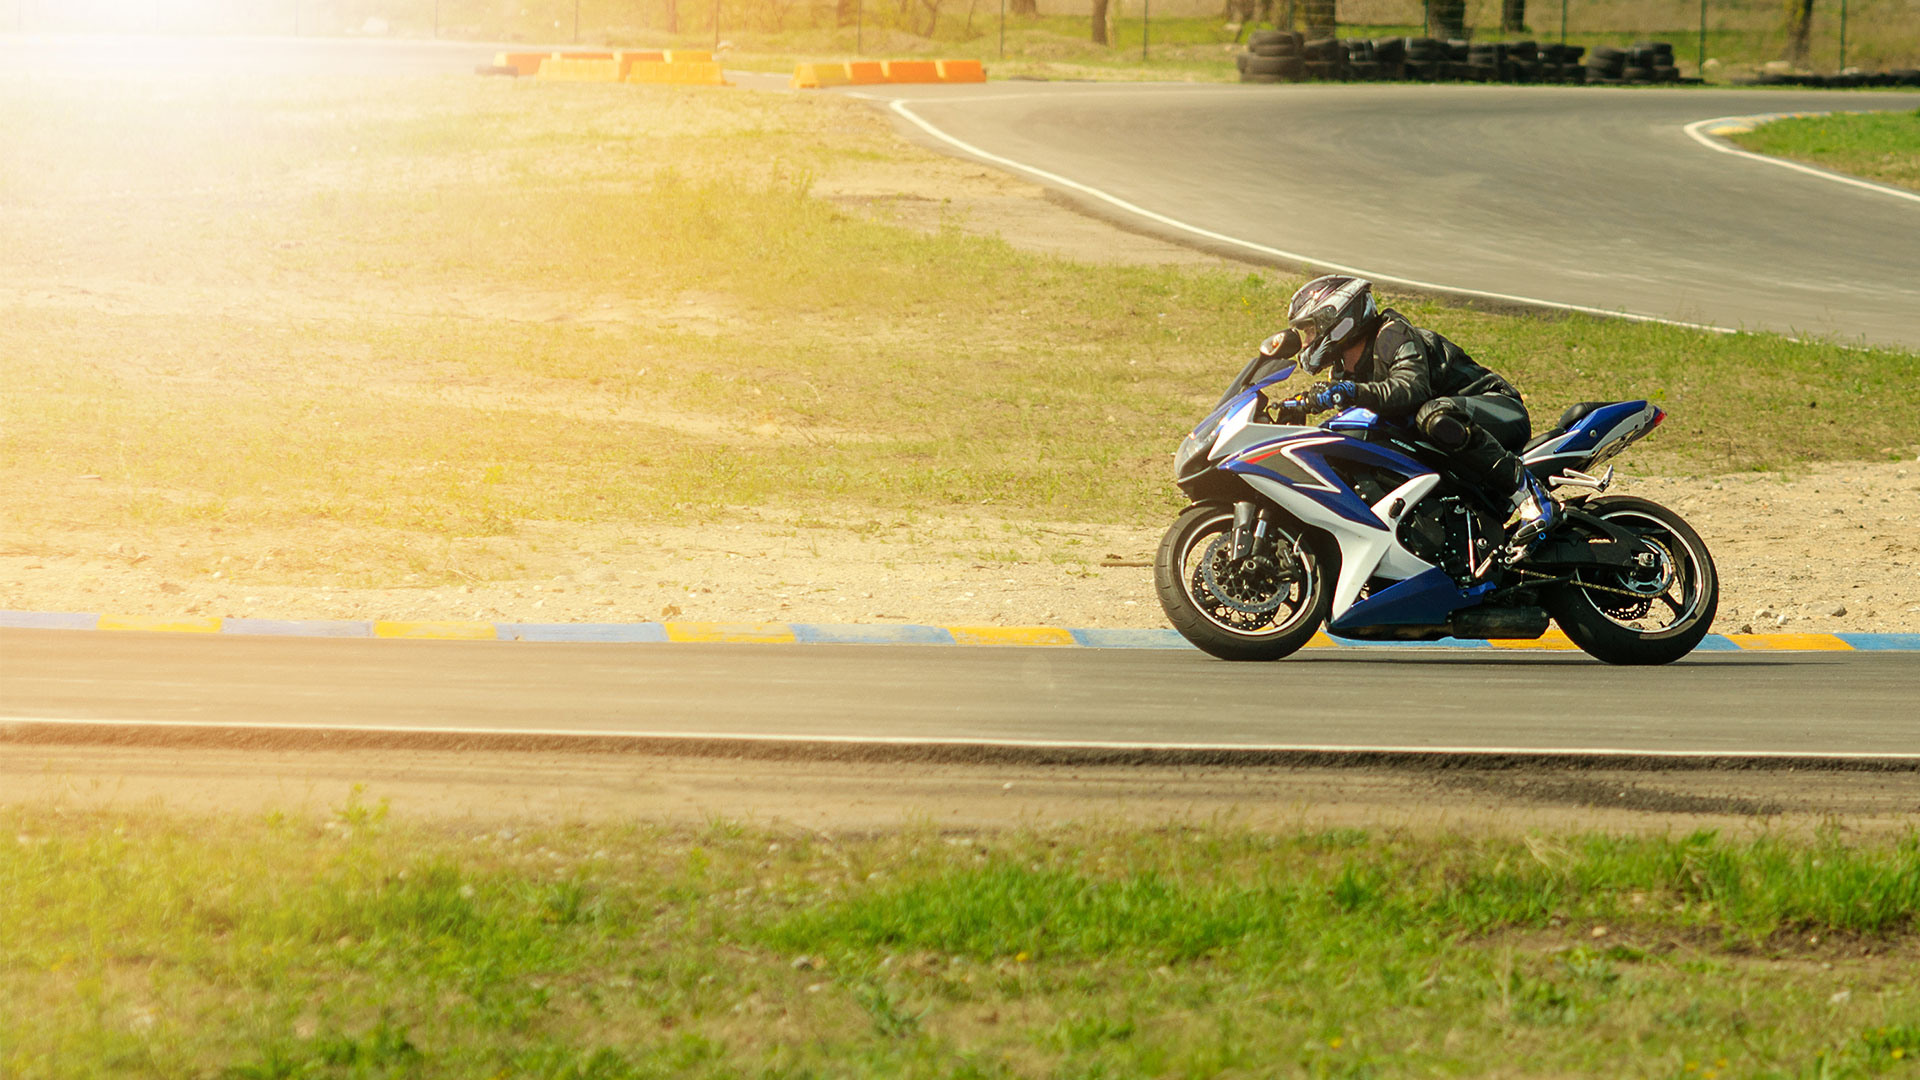 A British Stunt Rider Set a New Record for the Fastest Headstand on a Motorcycle